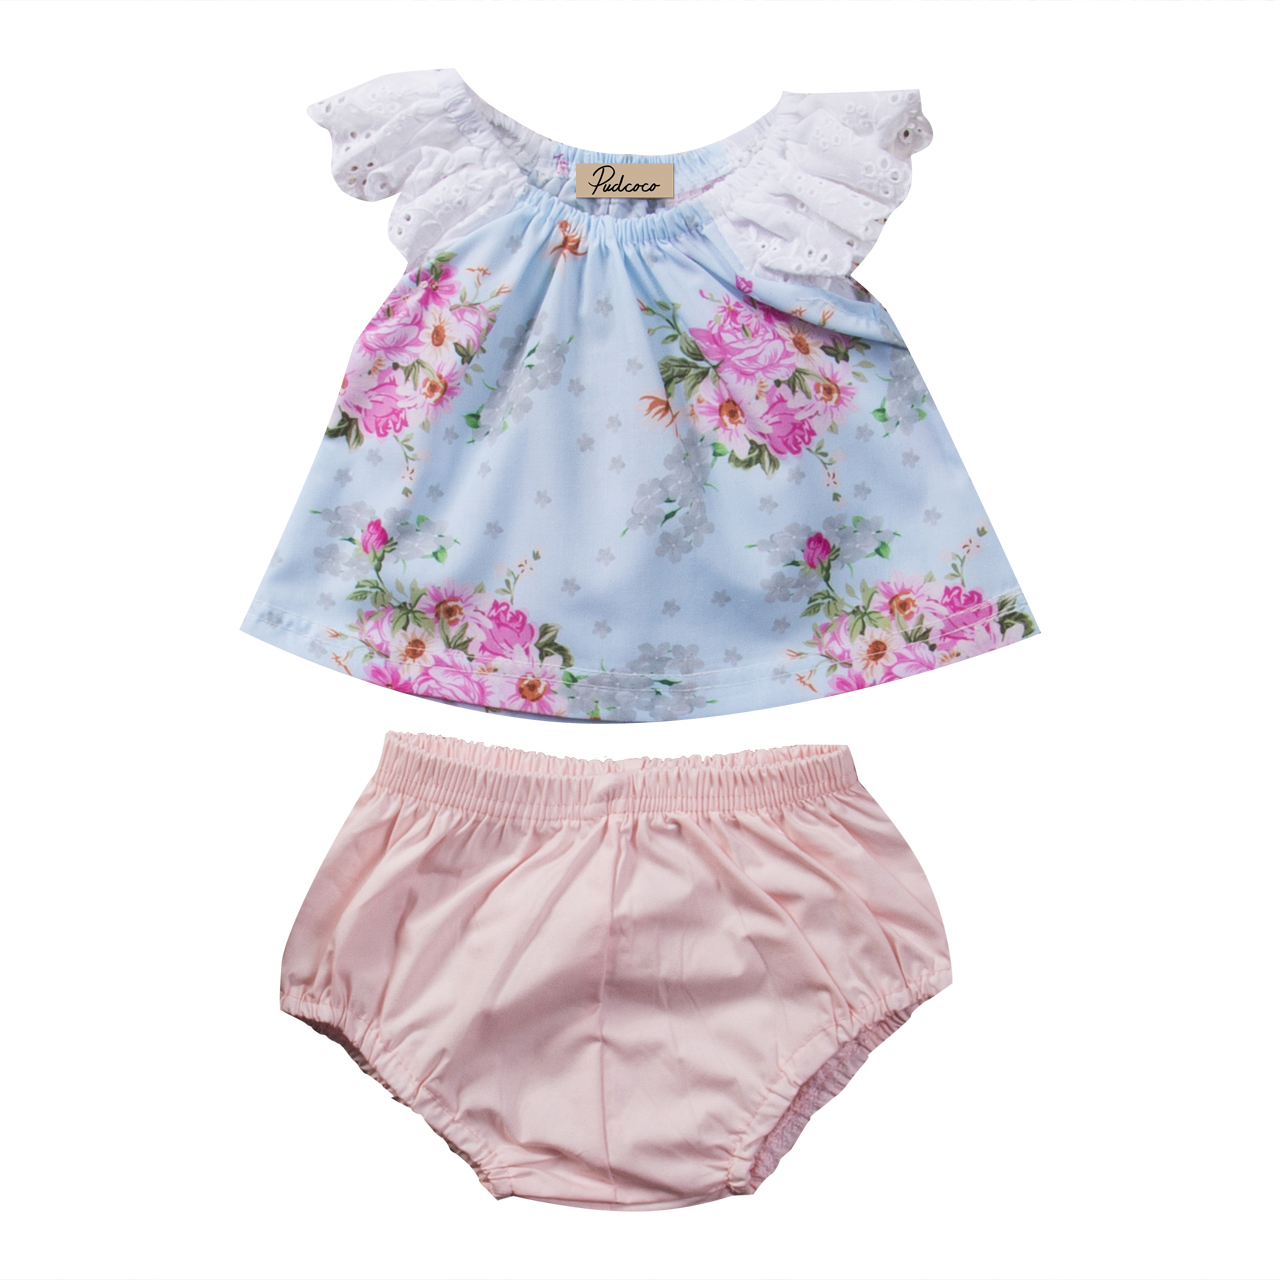 Toddler Kid Newborn Baby Girl Clothes Cute Sleeveless Floral T-shirt Tops+Shorts Bottom Briefs 2pcs Set Baby Girl Summer Clothes